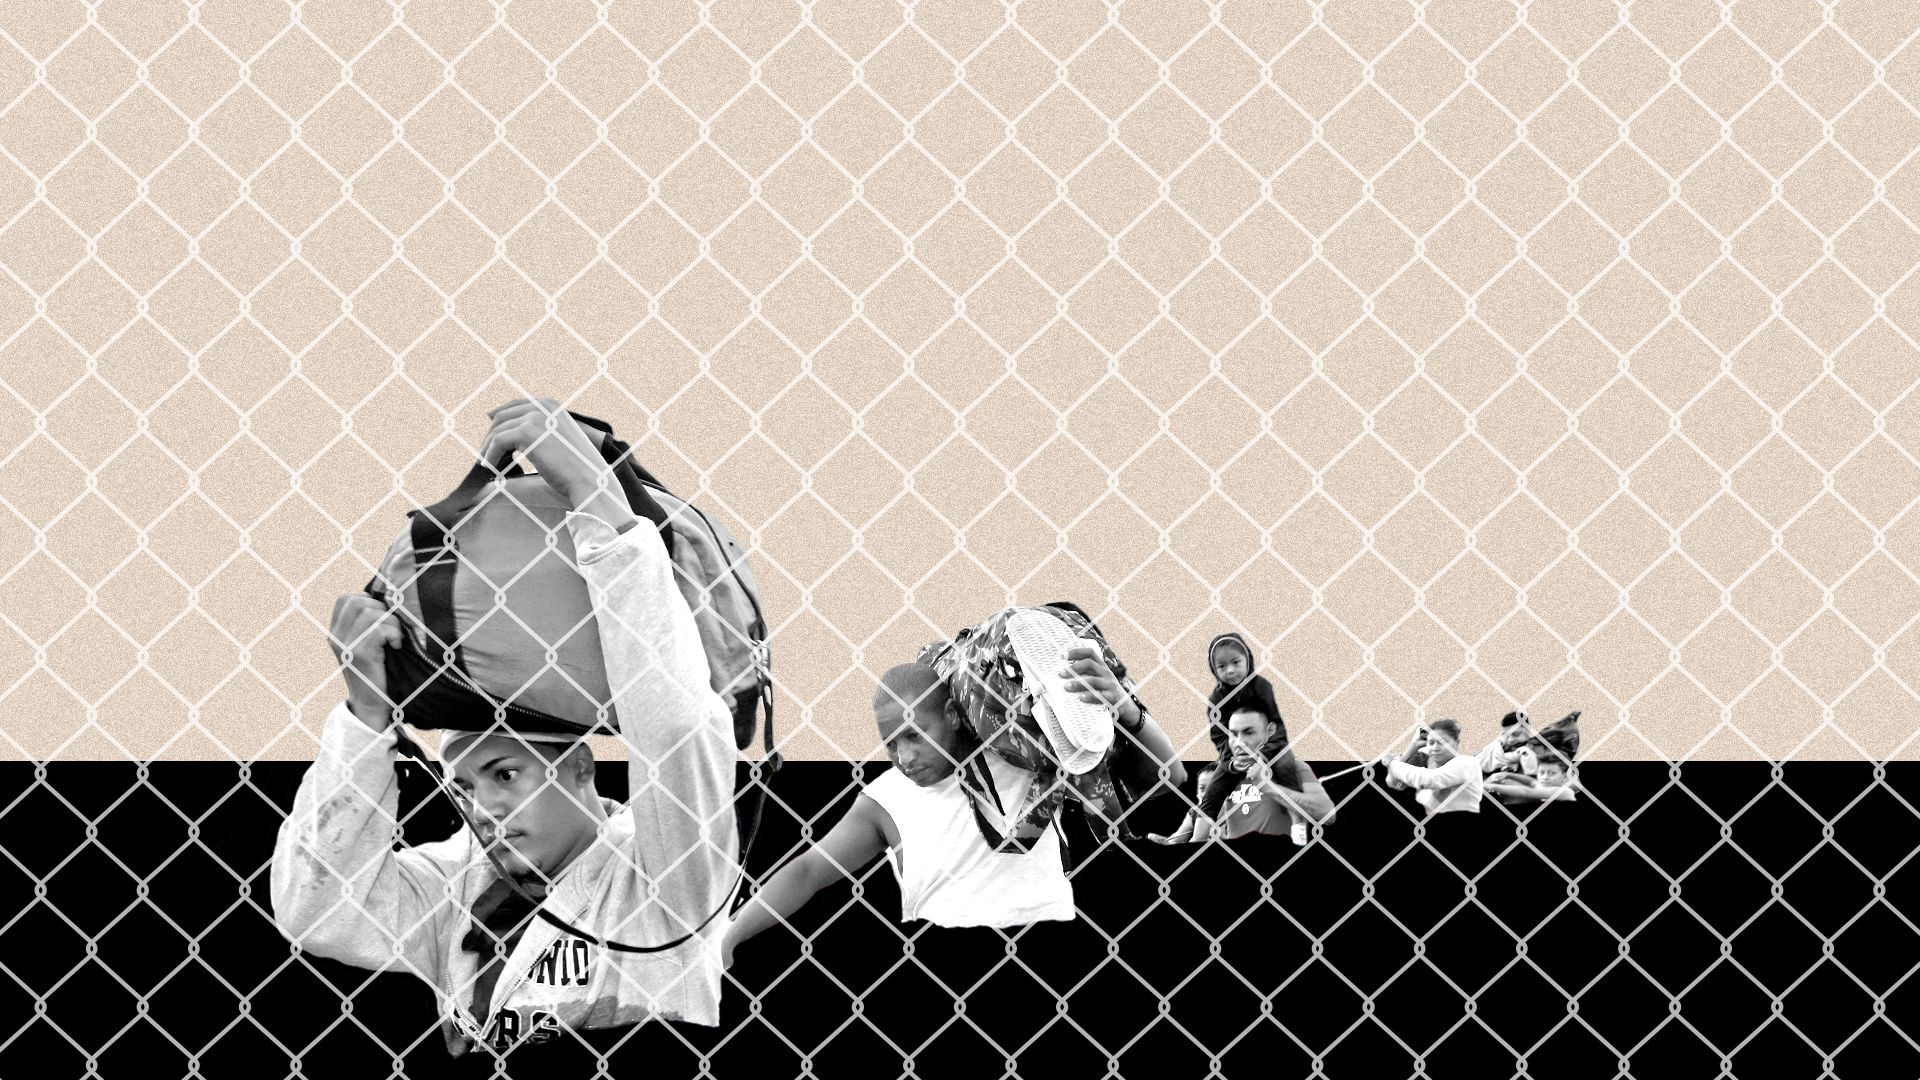 Illustrated collage of migrants wading through a dark background with a chain link fence texture on top.